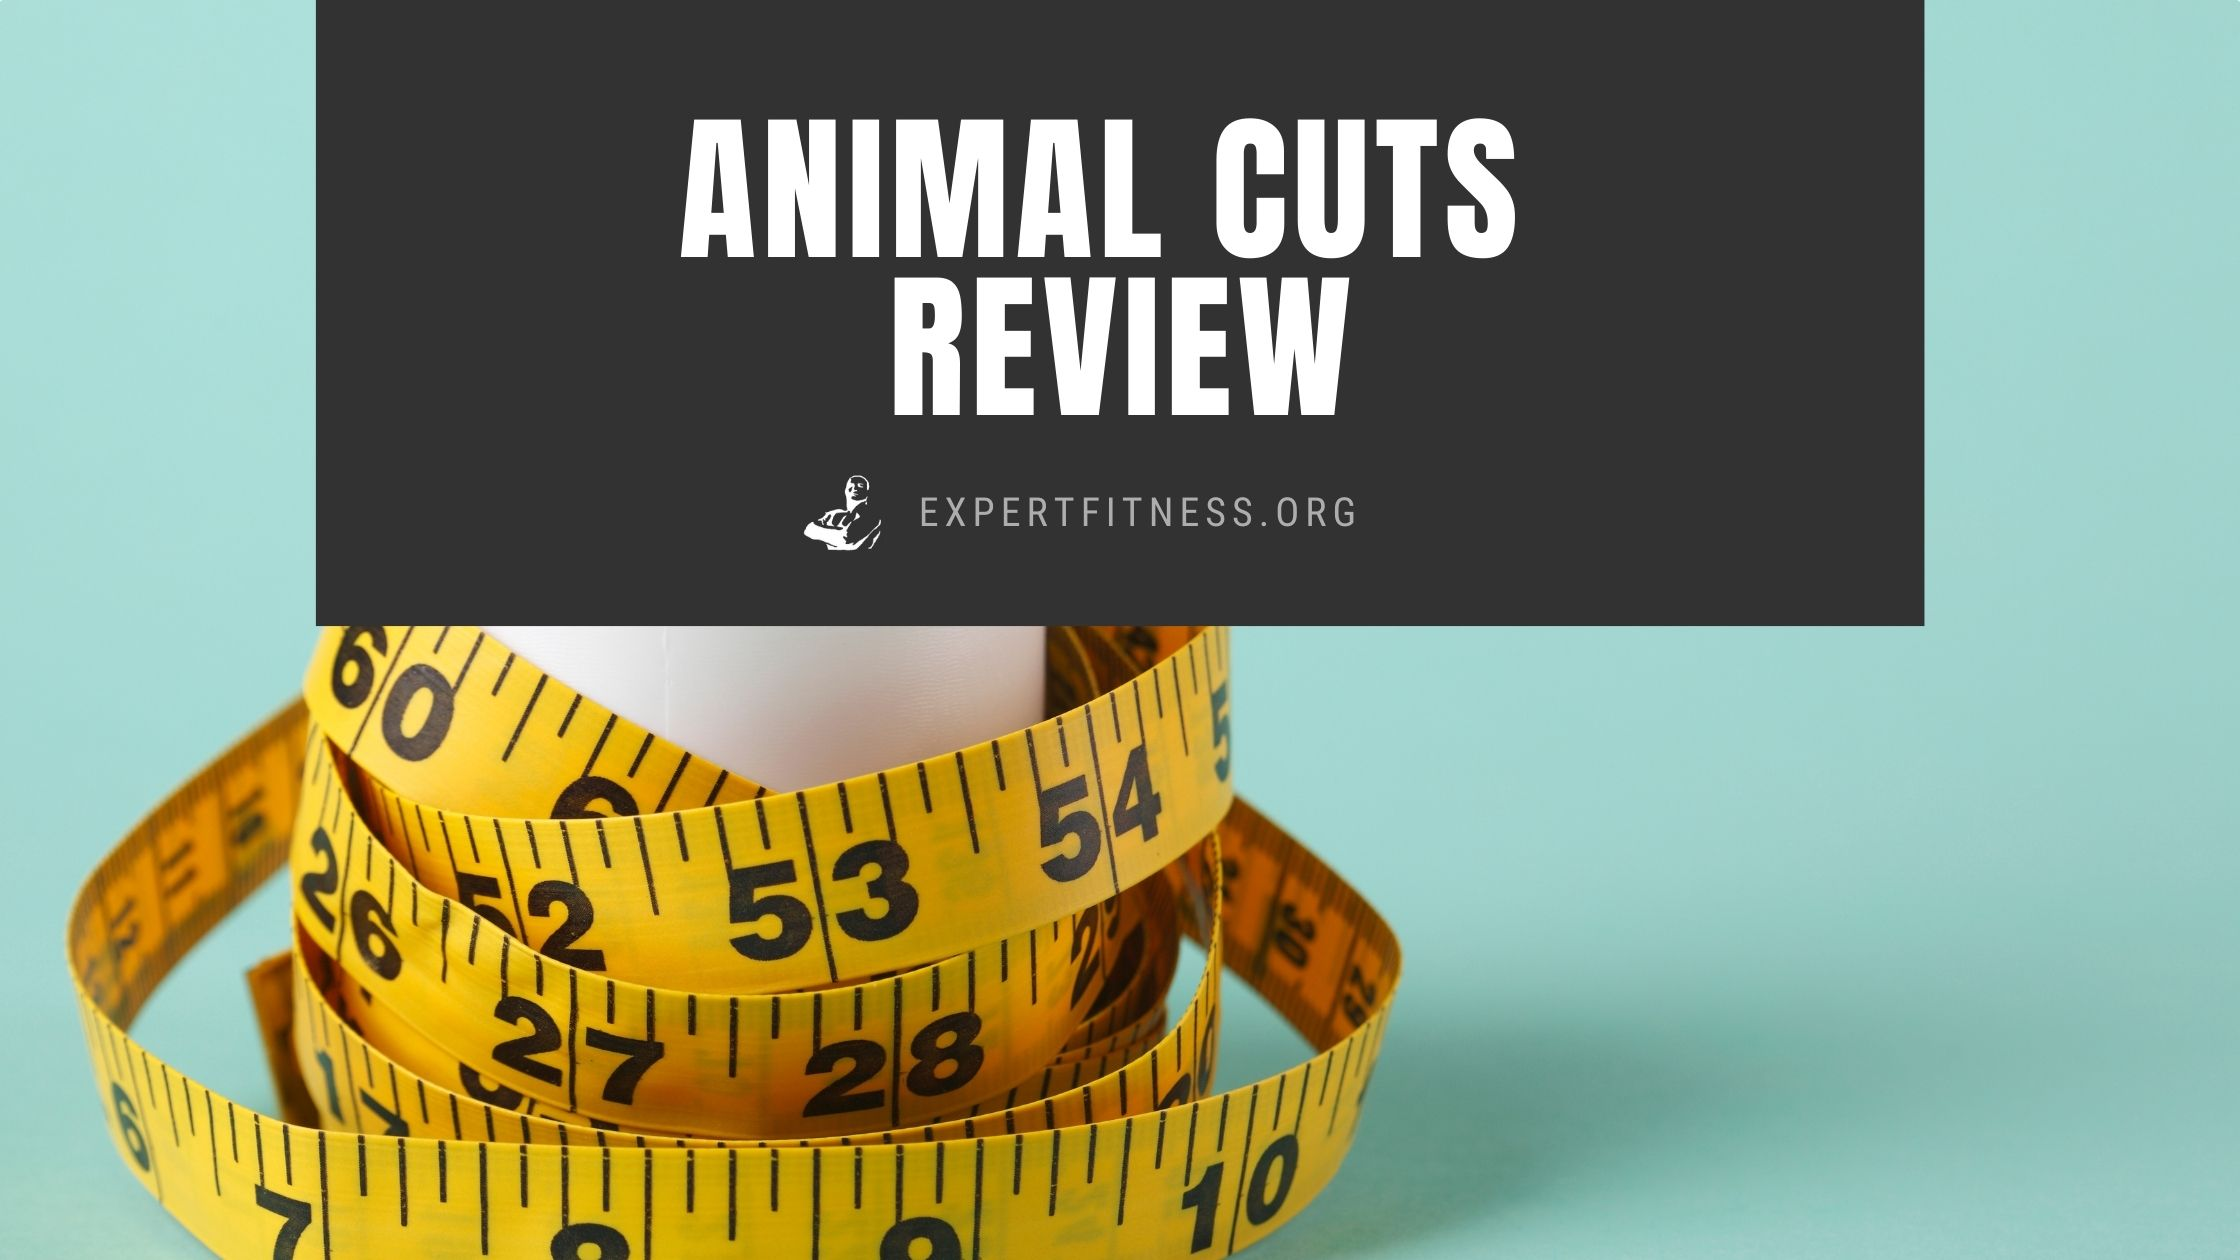 animal cuts review